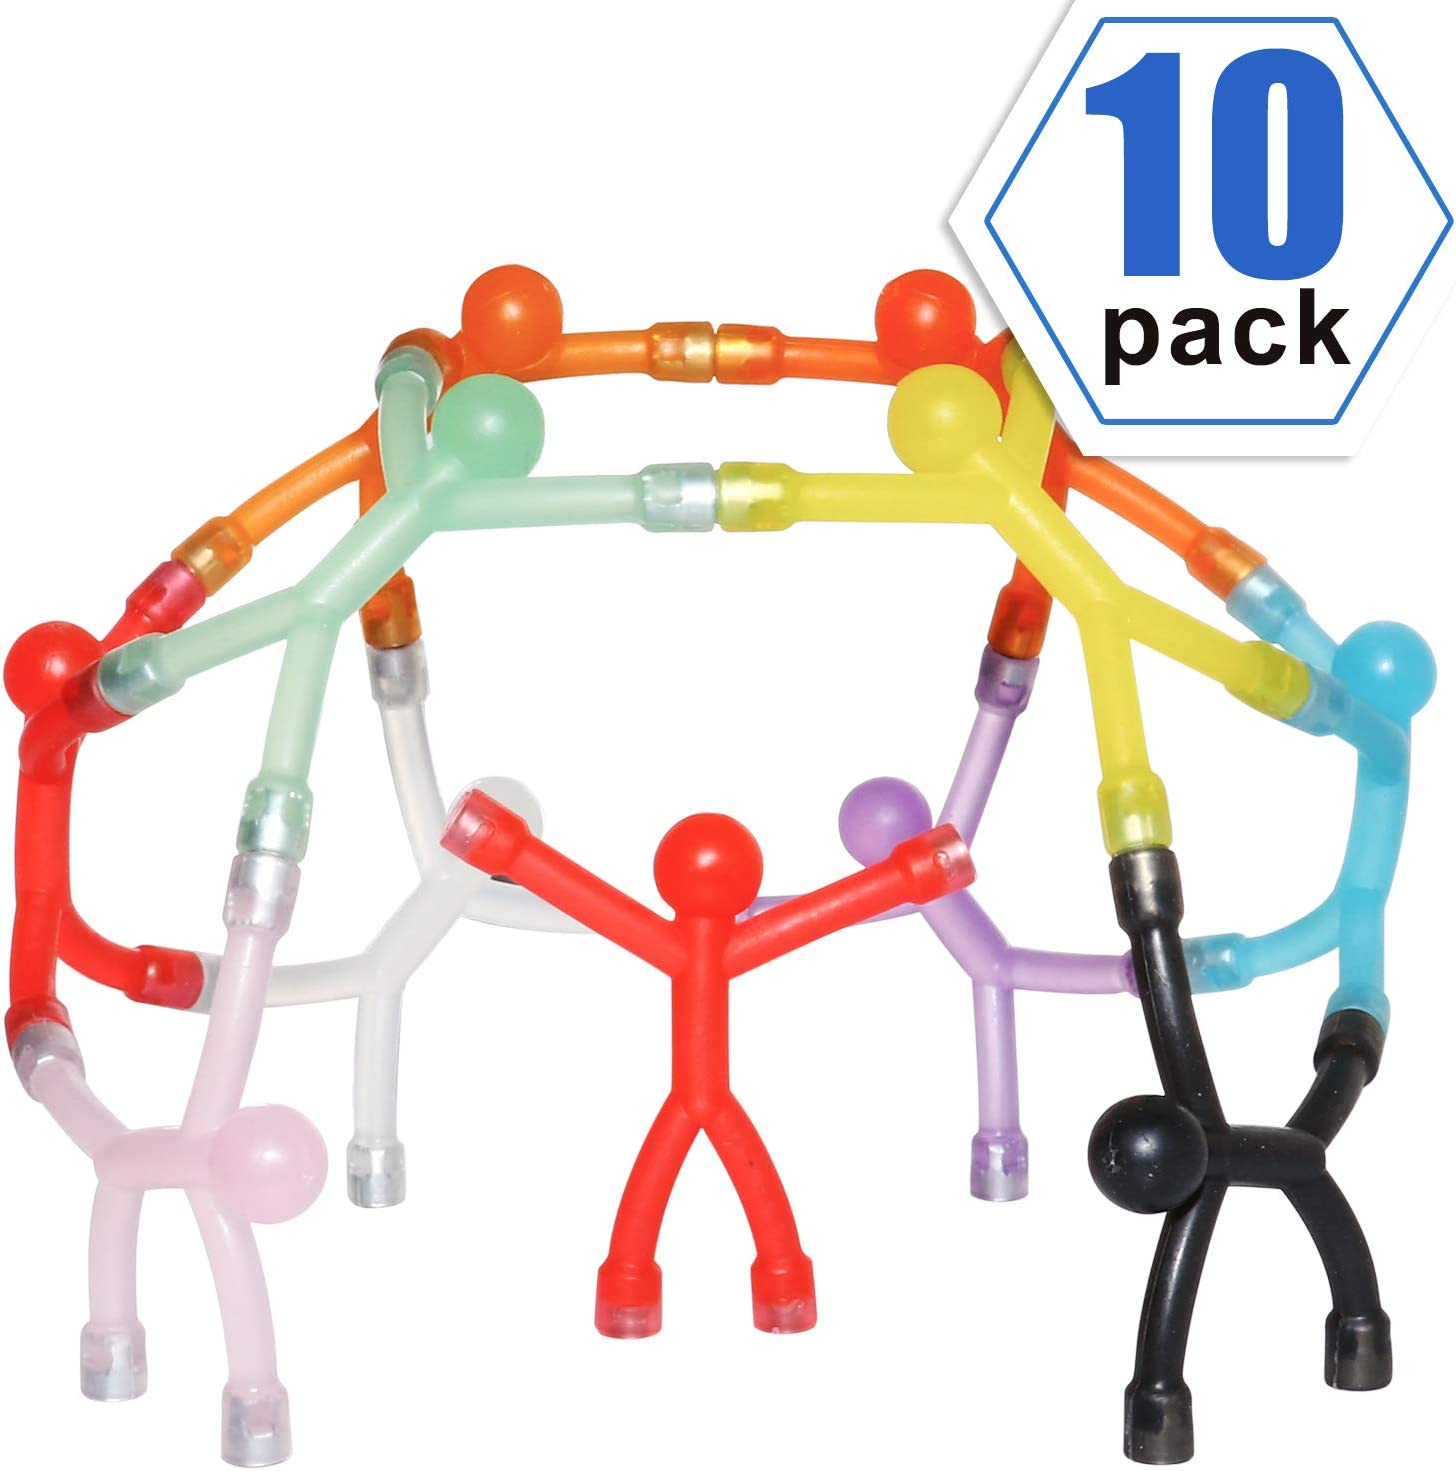 Colorful Humanoid Magnet With Magnets on their hands and feet perfect for Hobbies, Crafts, Science,Refrigerator, Door, Office,Pack of 10